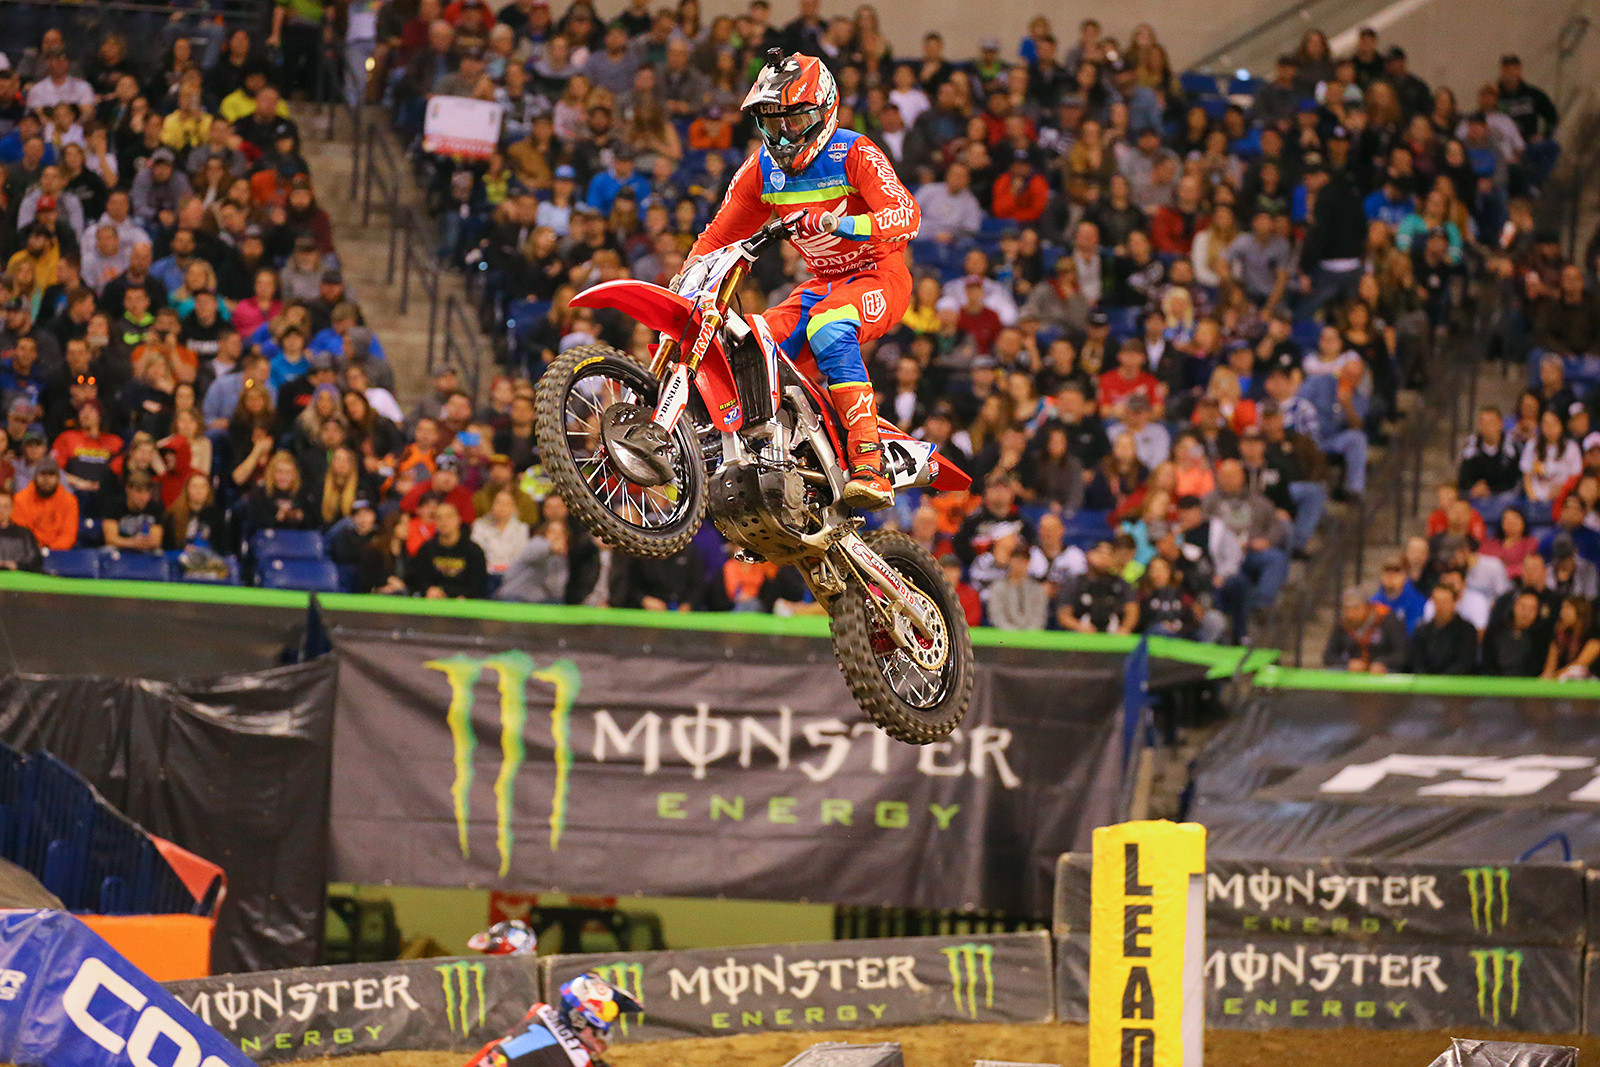 Cole Seely - Photo Blast: Indianapolis - Motocross Pictures - Vital MX